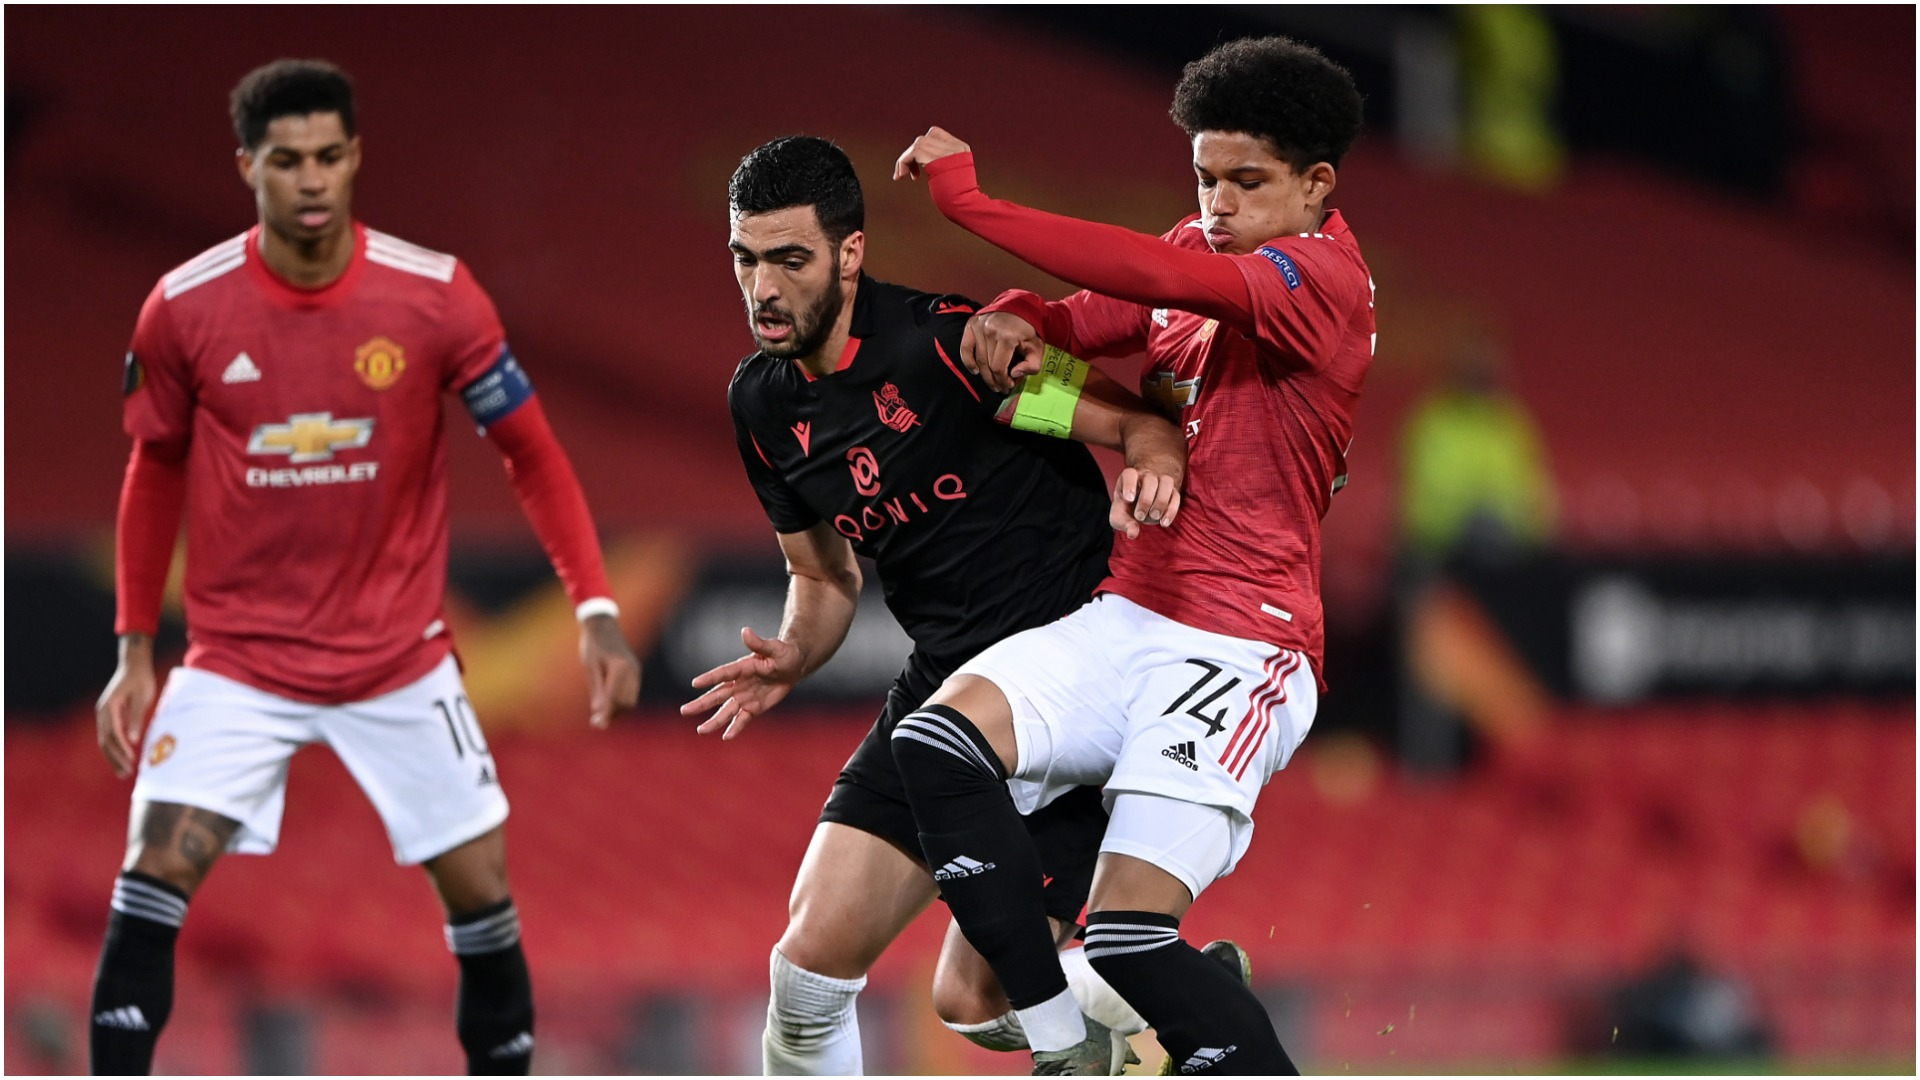 Manchester United 0-0 Real Sociedad (4-0 agg): Stalemate seals Red Devils' Europa League progress